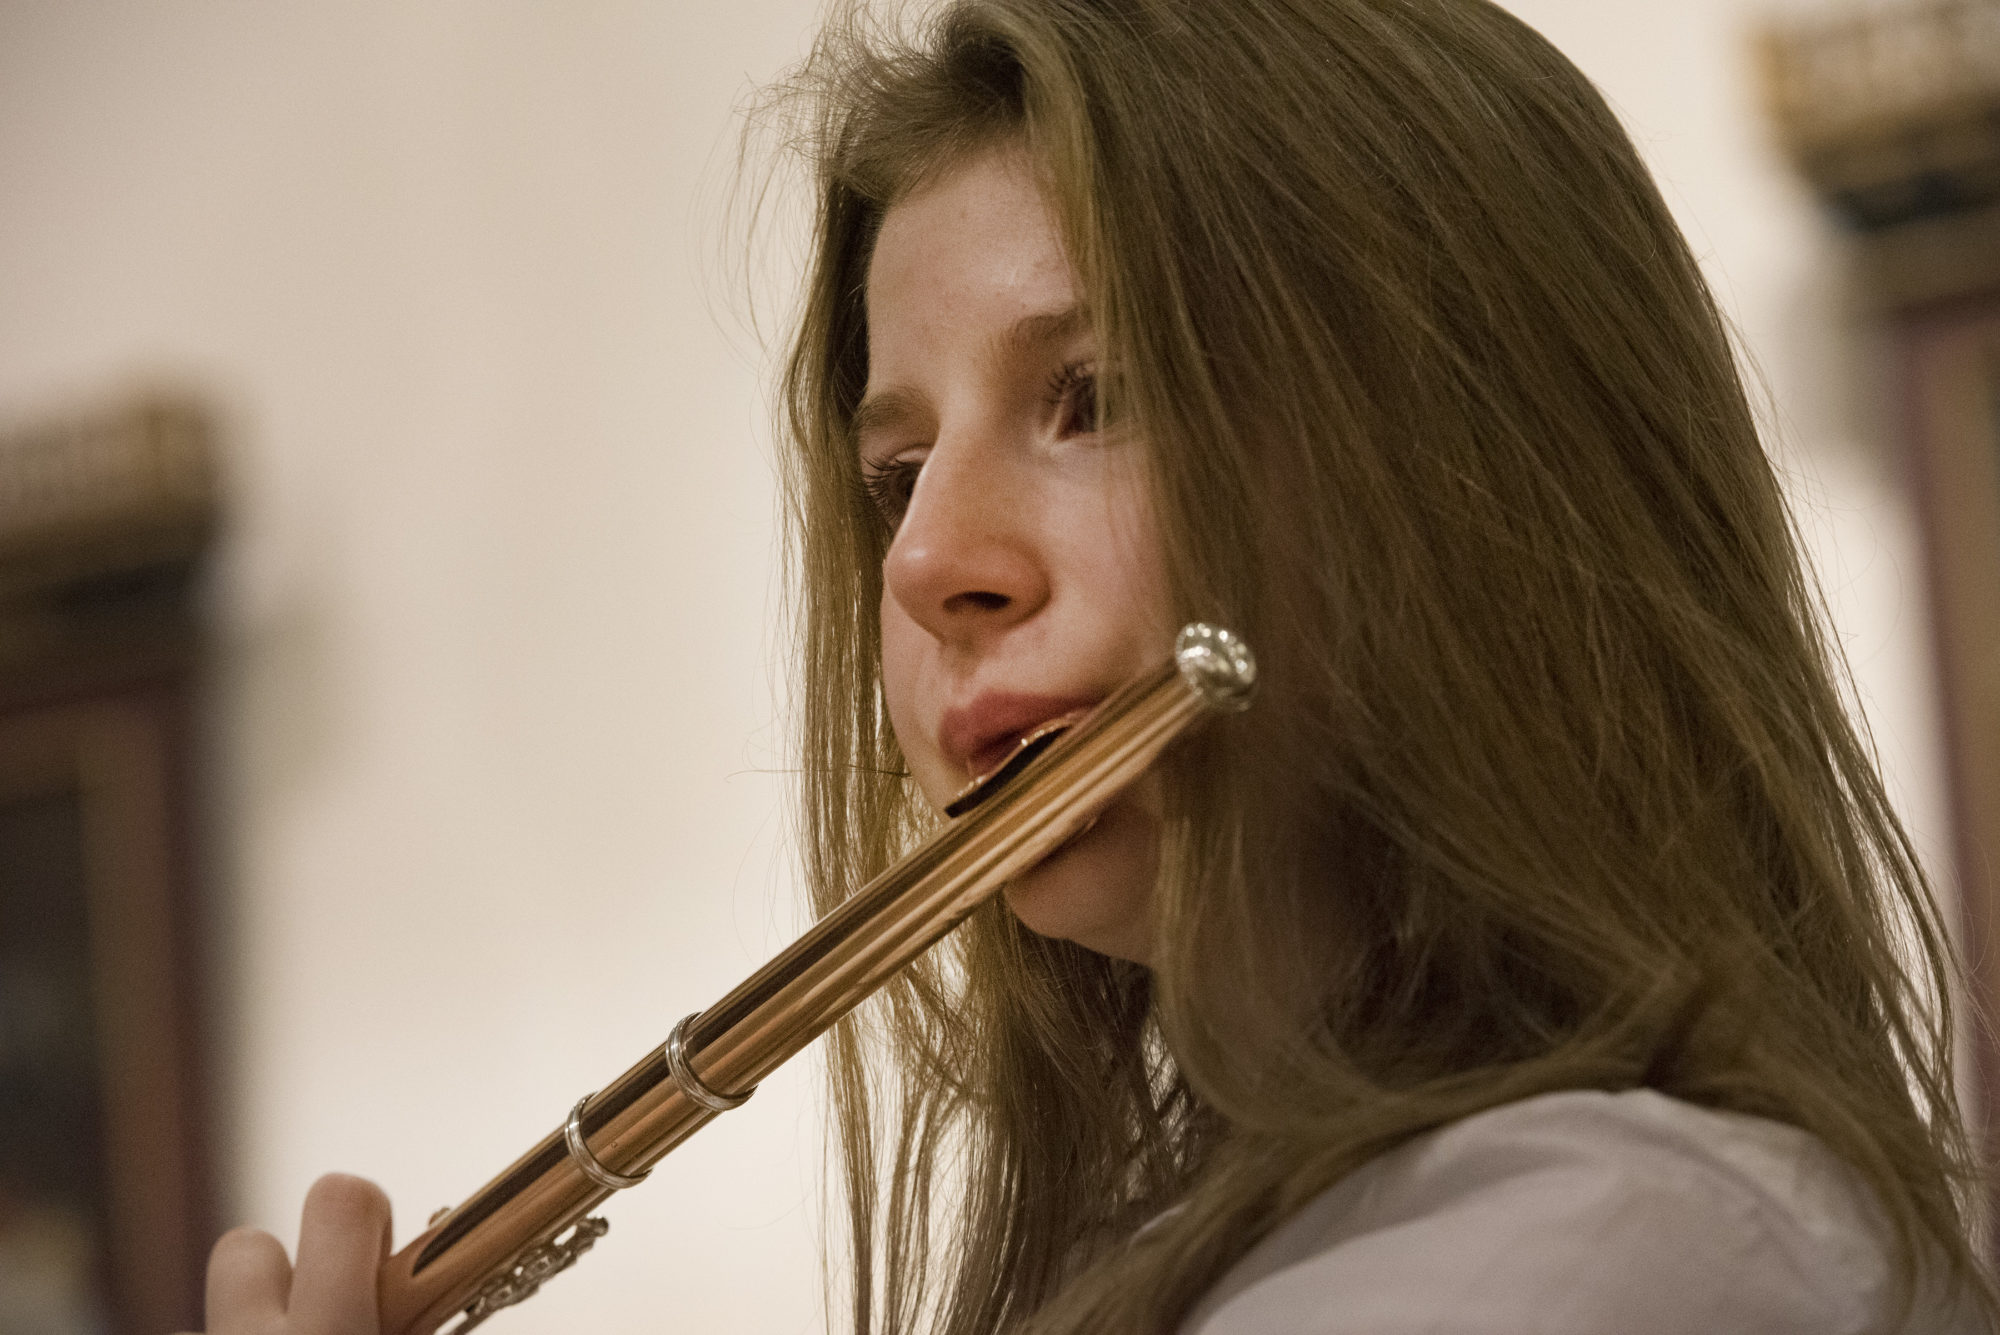 Magdalen College Sixth Form Music pupil playing the flute